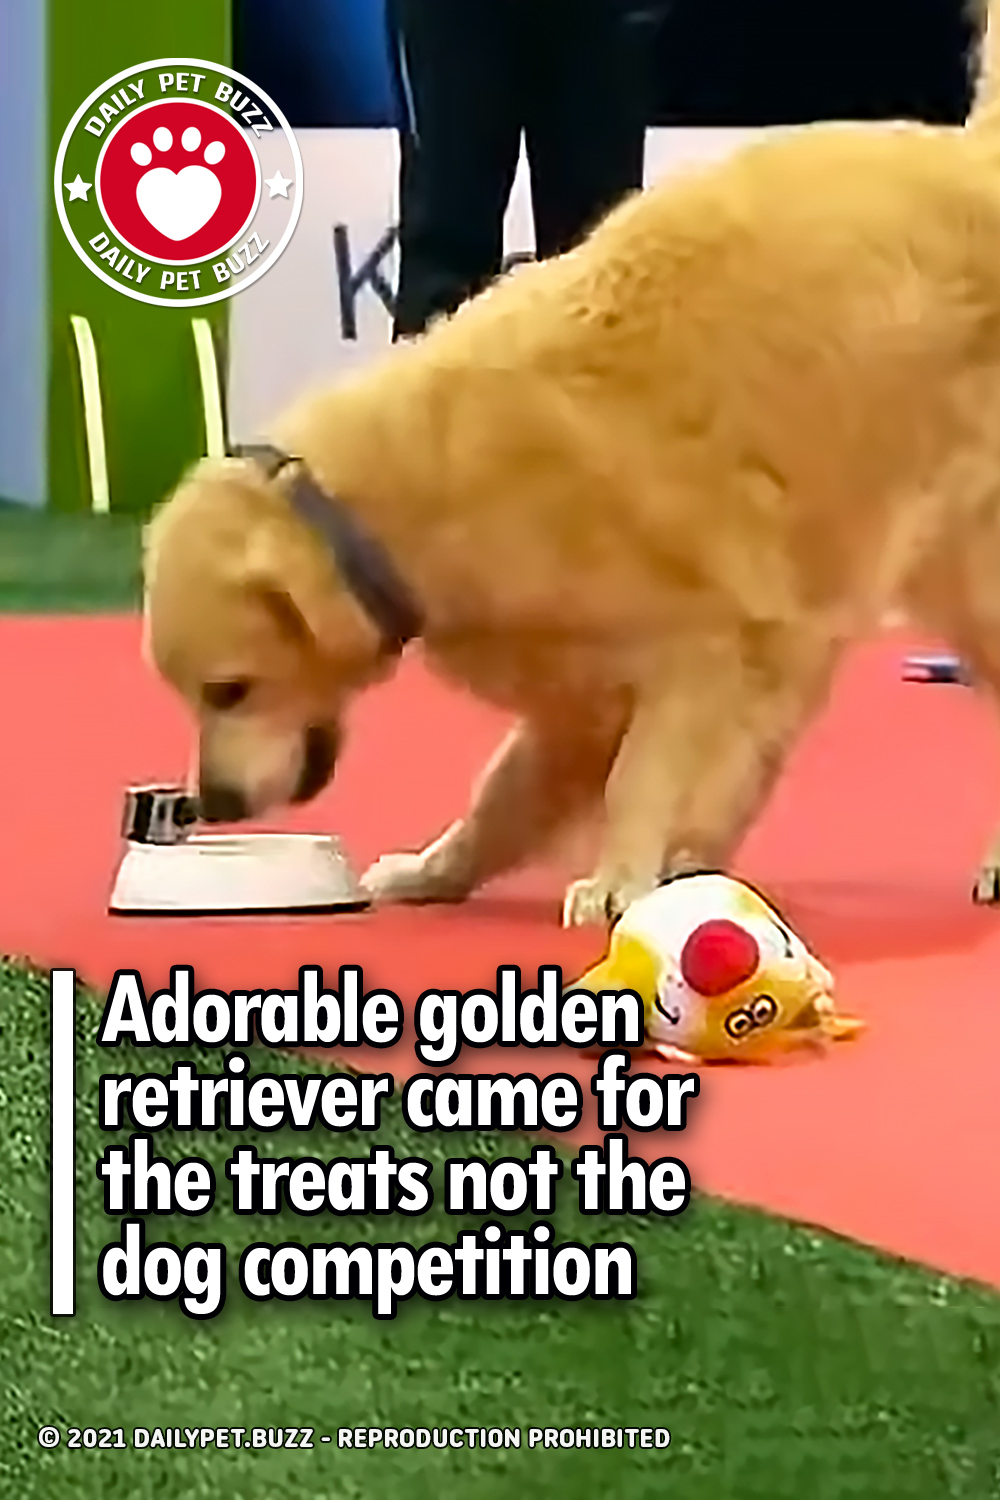 Adorable golden retriever came for the treats not the dog competition